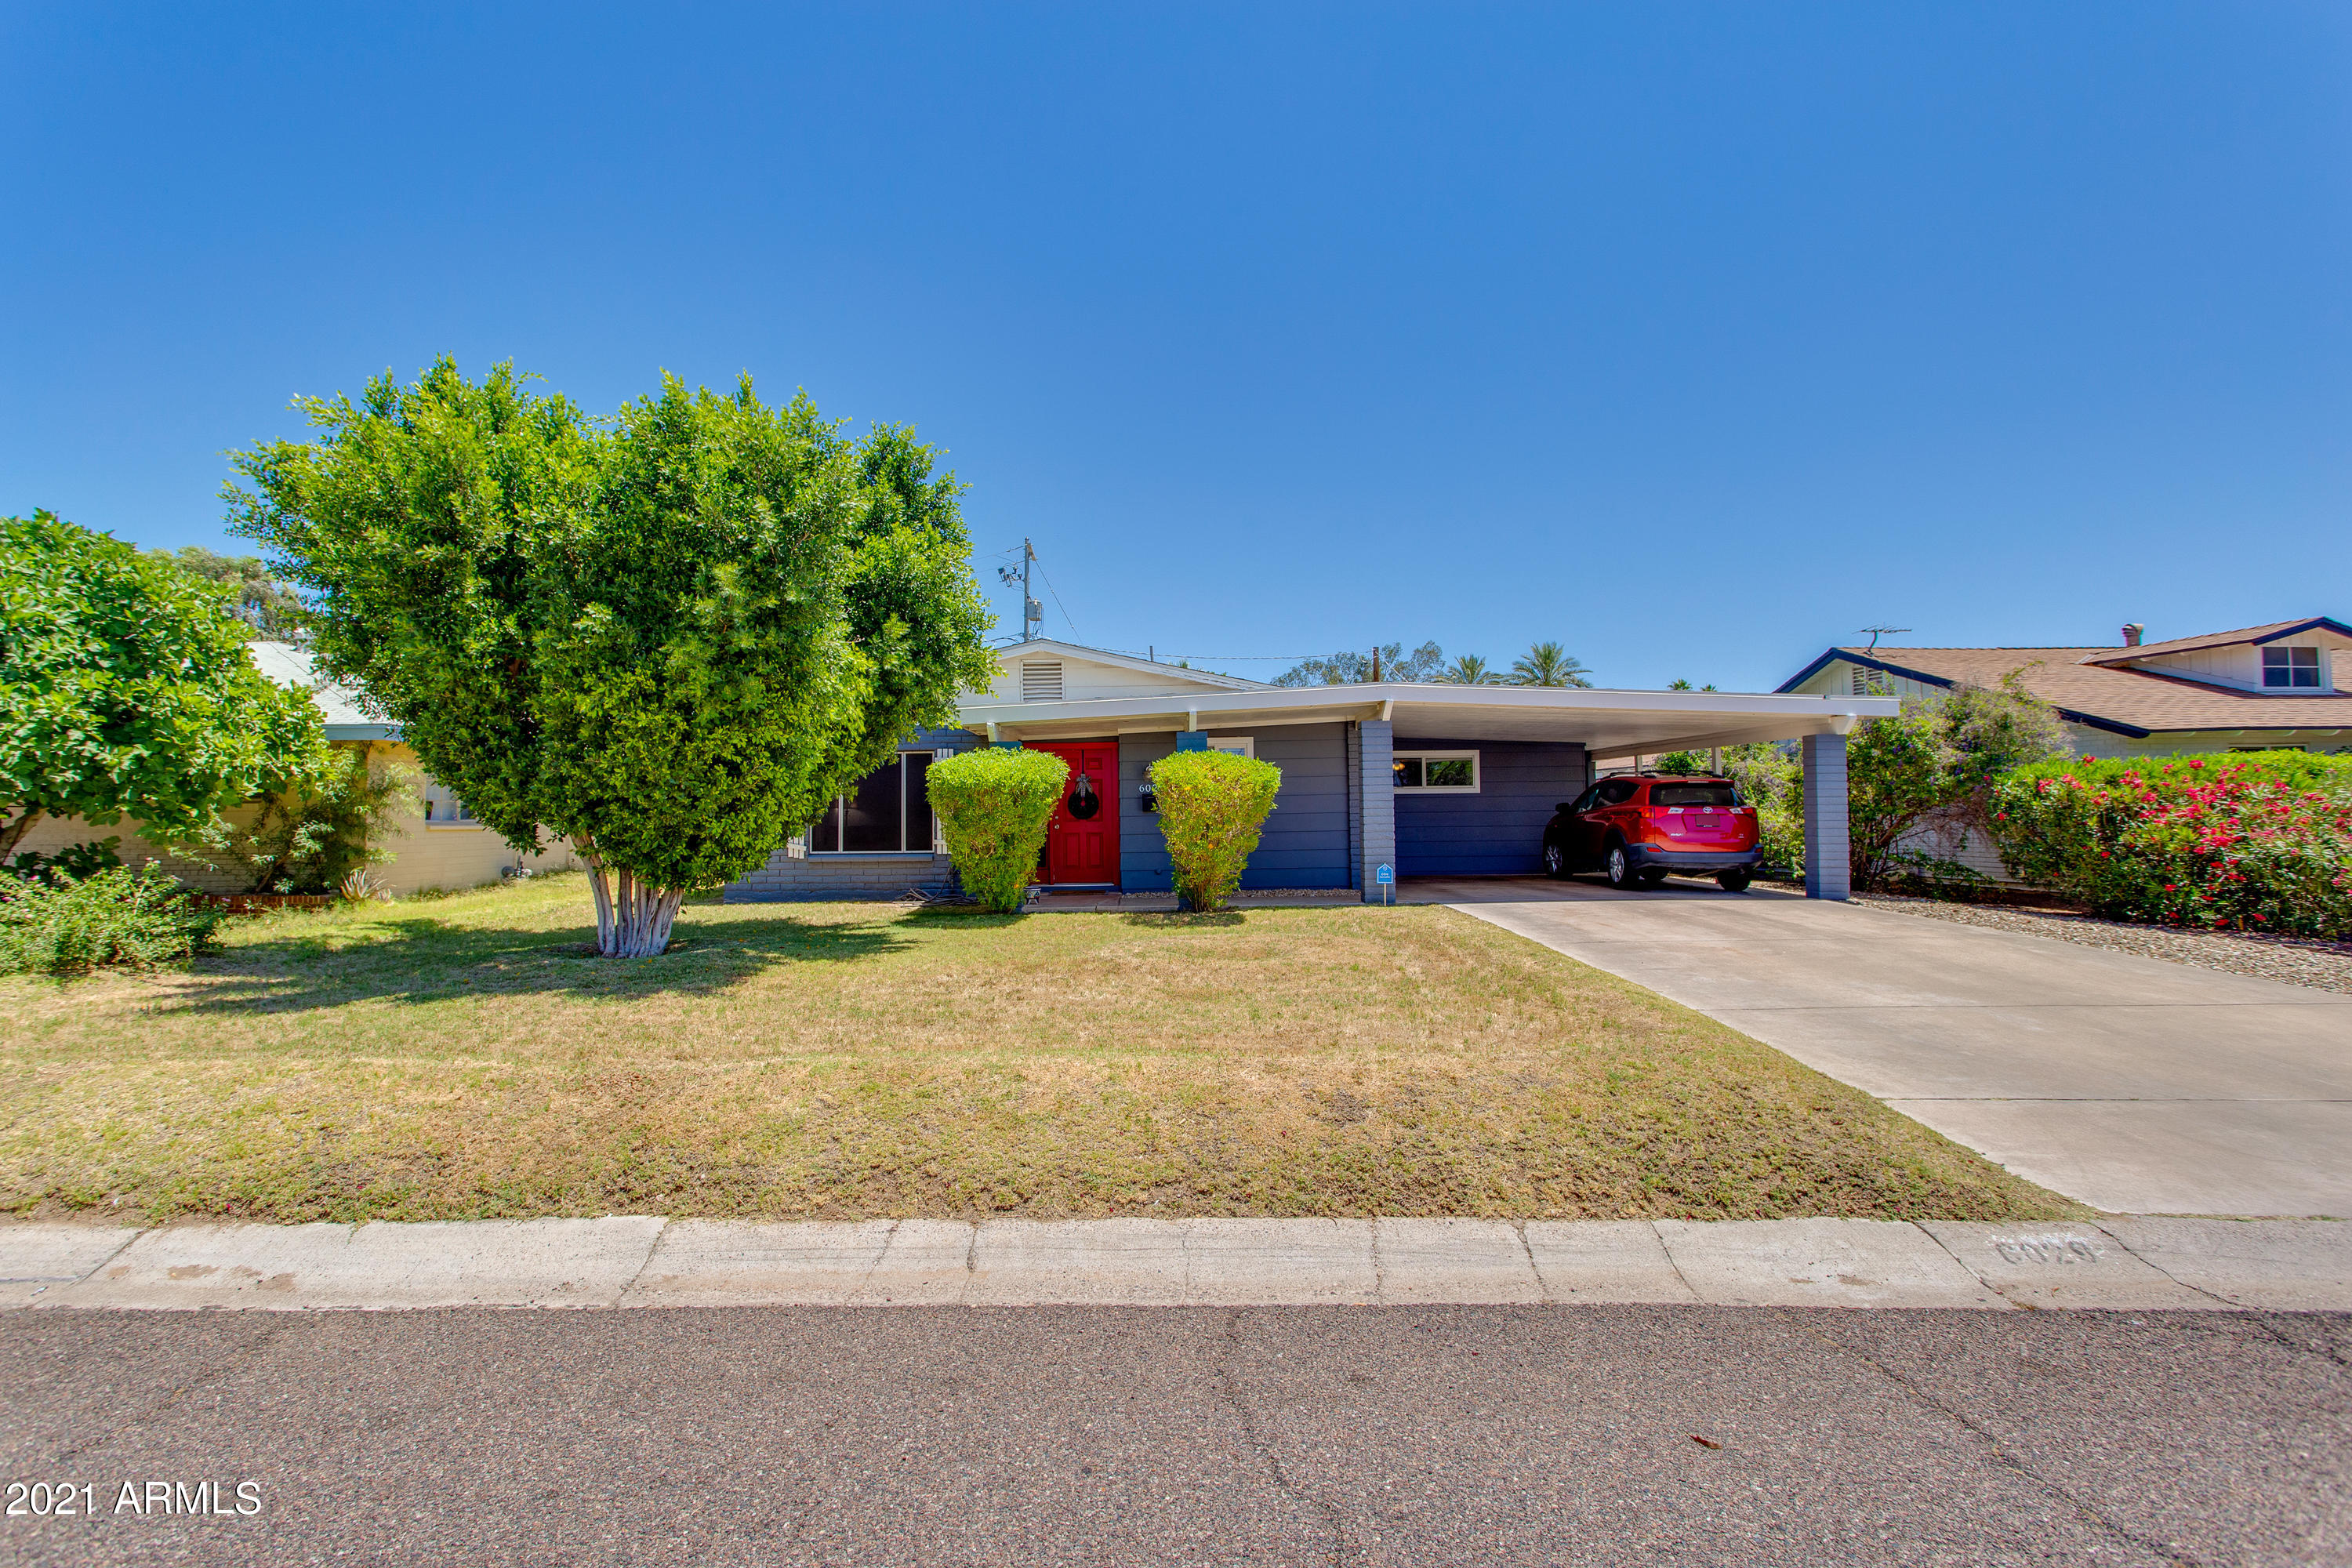 *Please note: there is a tenant in place through February 2022* This beautiful ranch home is in a prime location just around the corner from The Vig Uptown, Dick's Hideaway, and the AZ-51 freeway. Featuring exposed slump block, engineered wood flooring, clean paint, and shaker style cabinetry throughout, this updated North Central property is sure to please. The interior layout offers three bedrooms, a spacious den/office with laundry closet, and an open, eat-in kitchen. Enjoy views of the mountain peaks from your covered back patio, green grass, trees, and a large carport that hosts two vehicles.